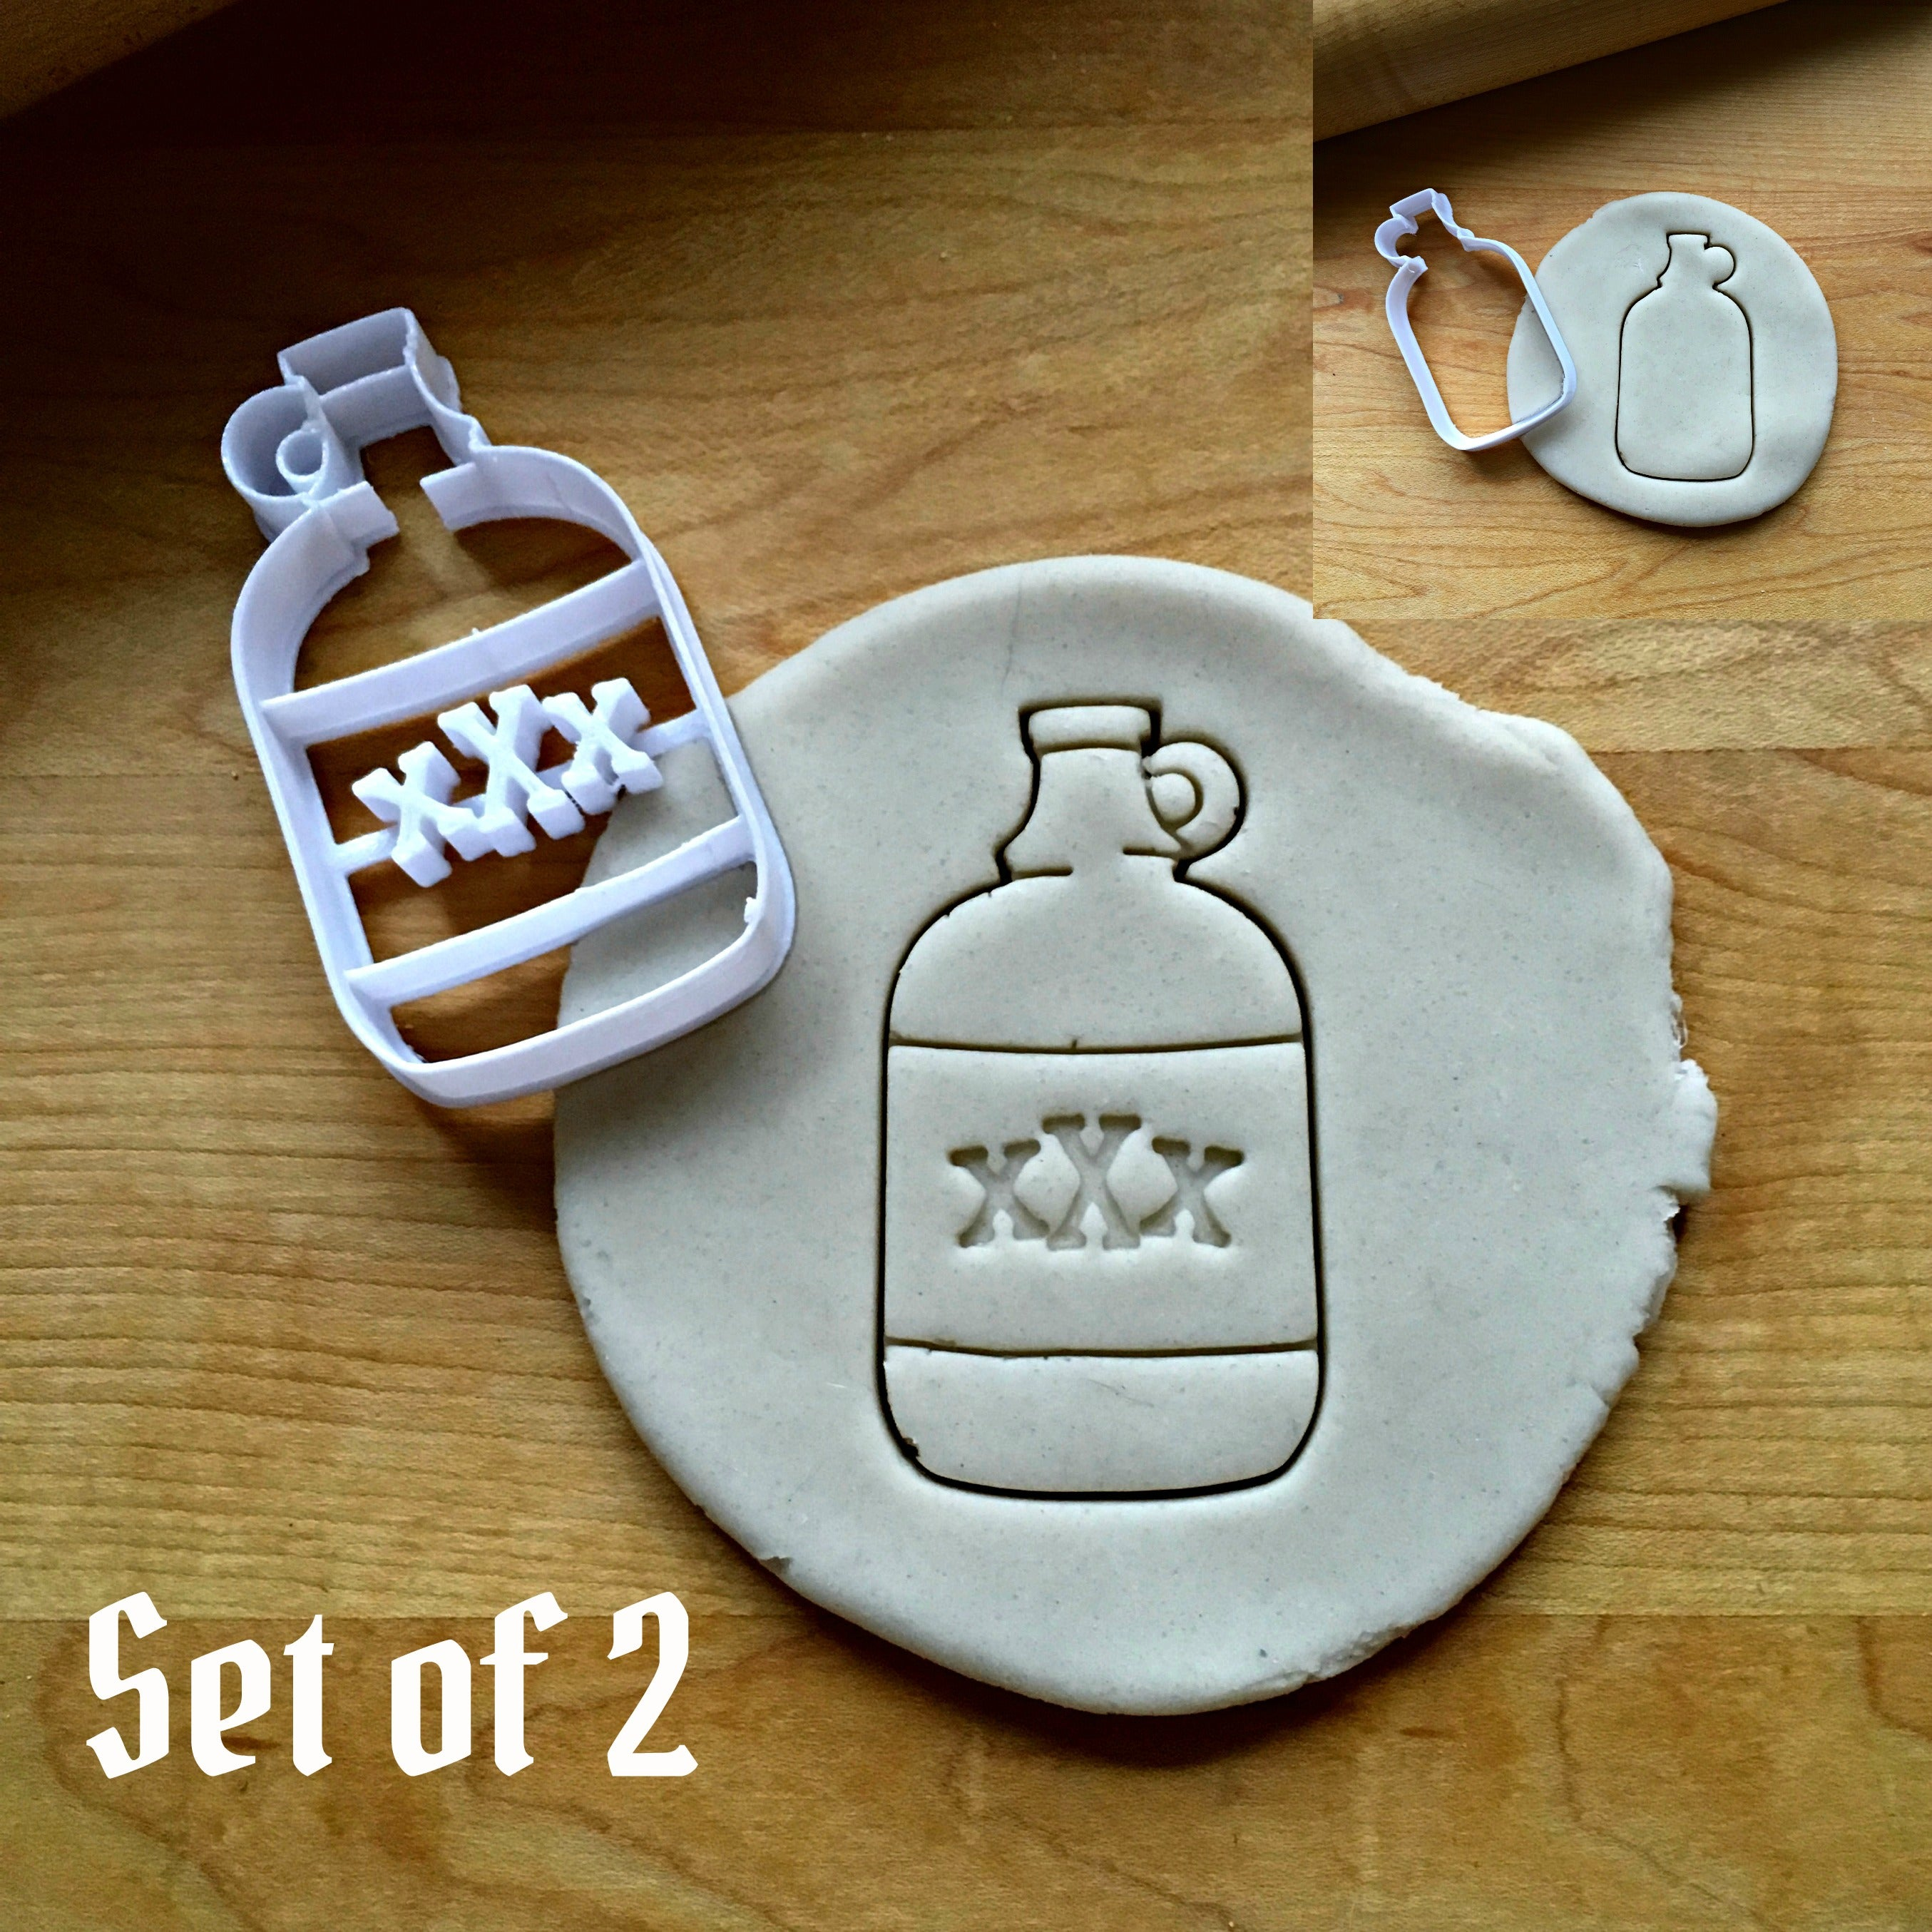 Set of 2 Bottle of Rum Cookie Cutters/Dishwasher Safe